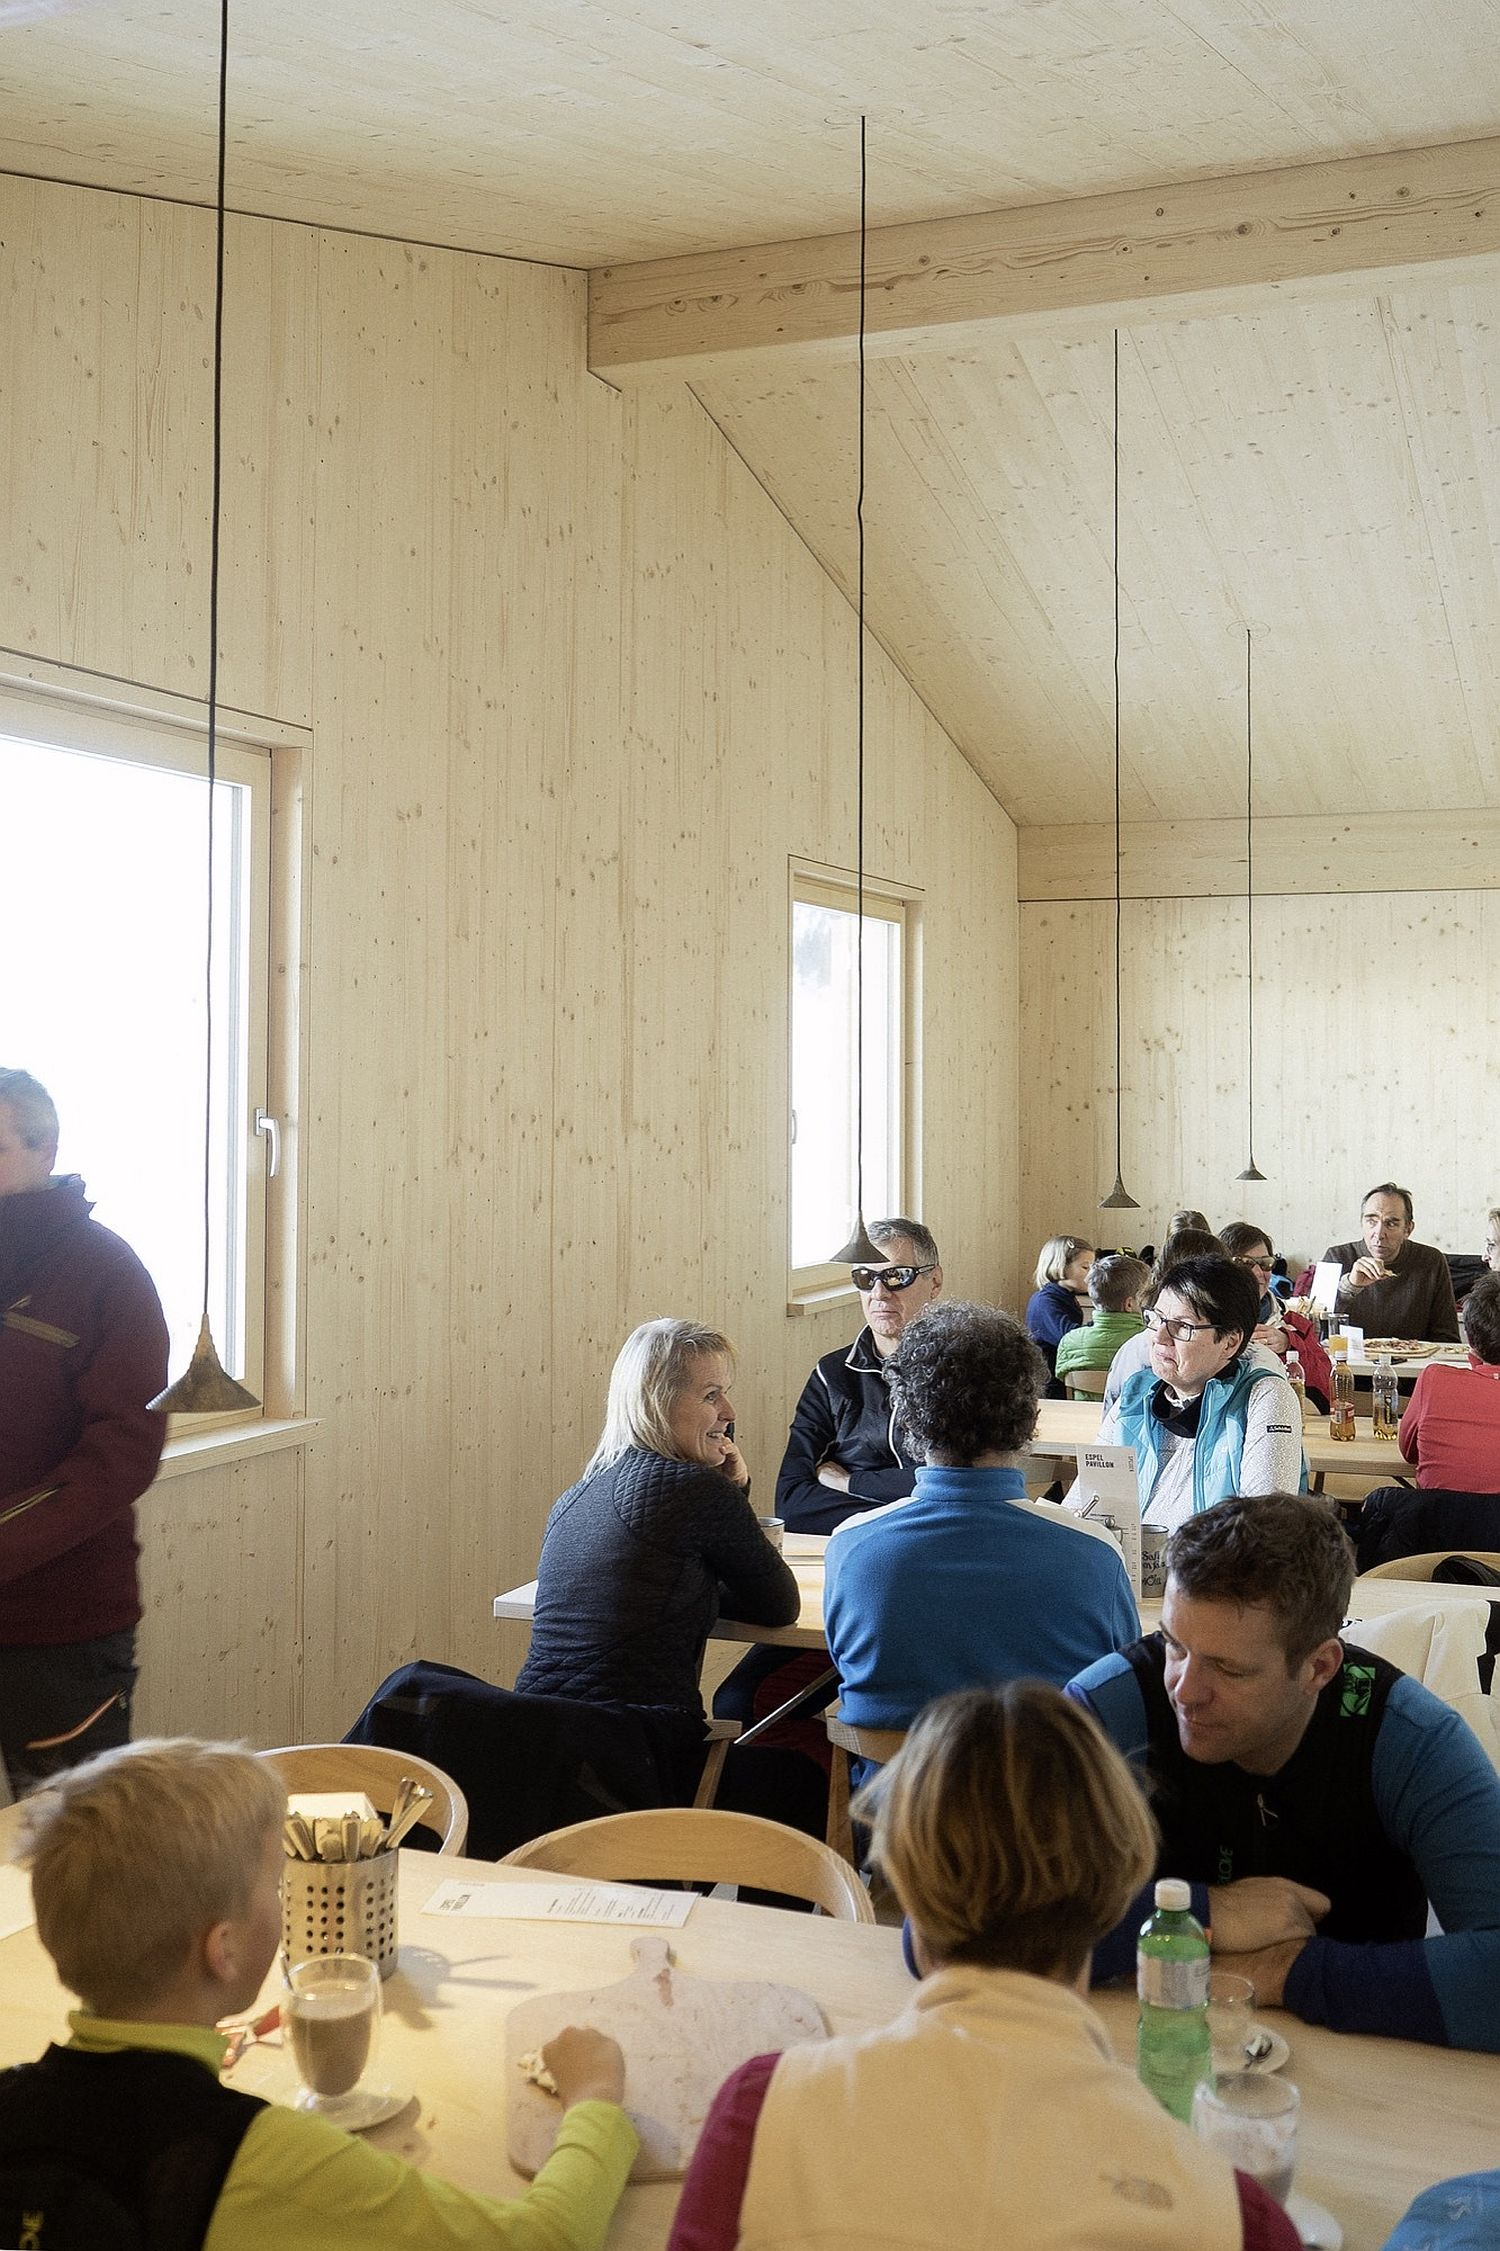 Light-filled-and-space-savvy-interior-of-the-Toggenburg-pavilion